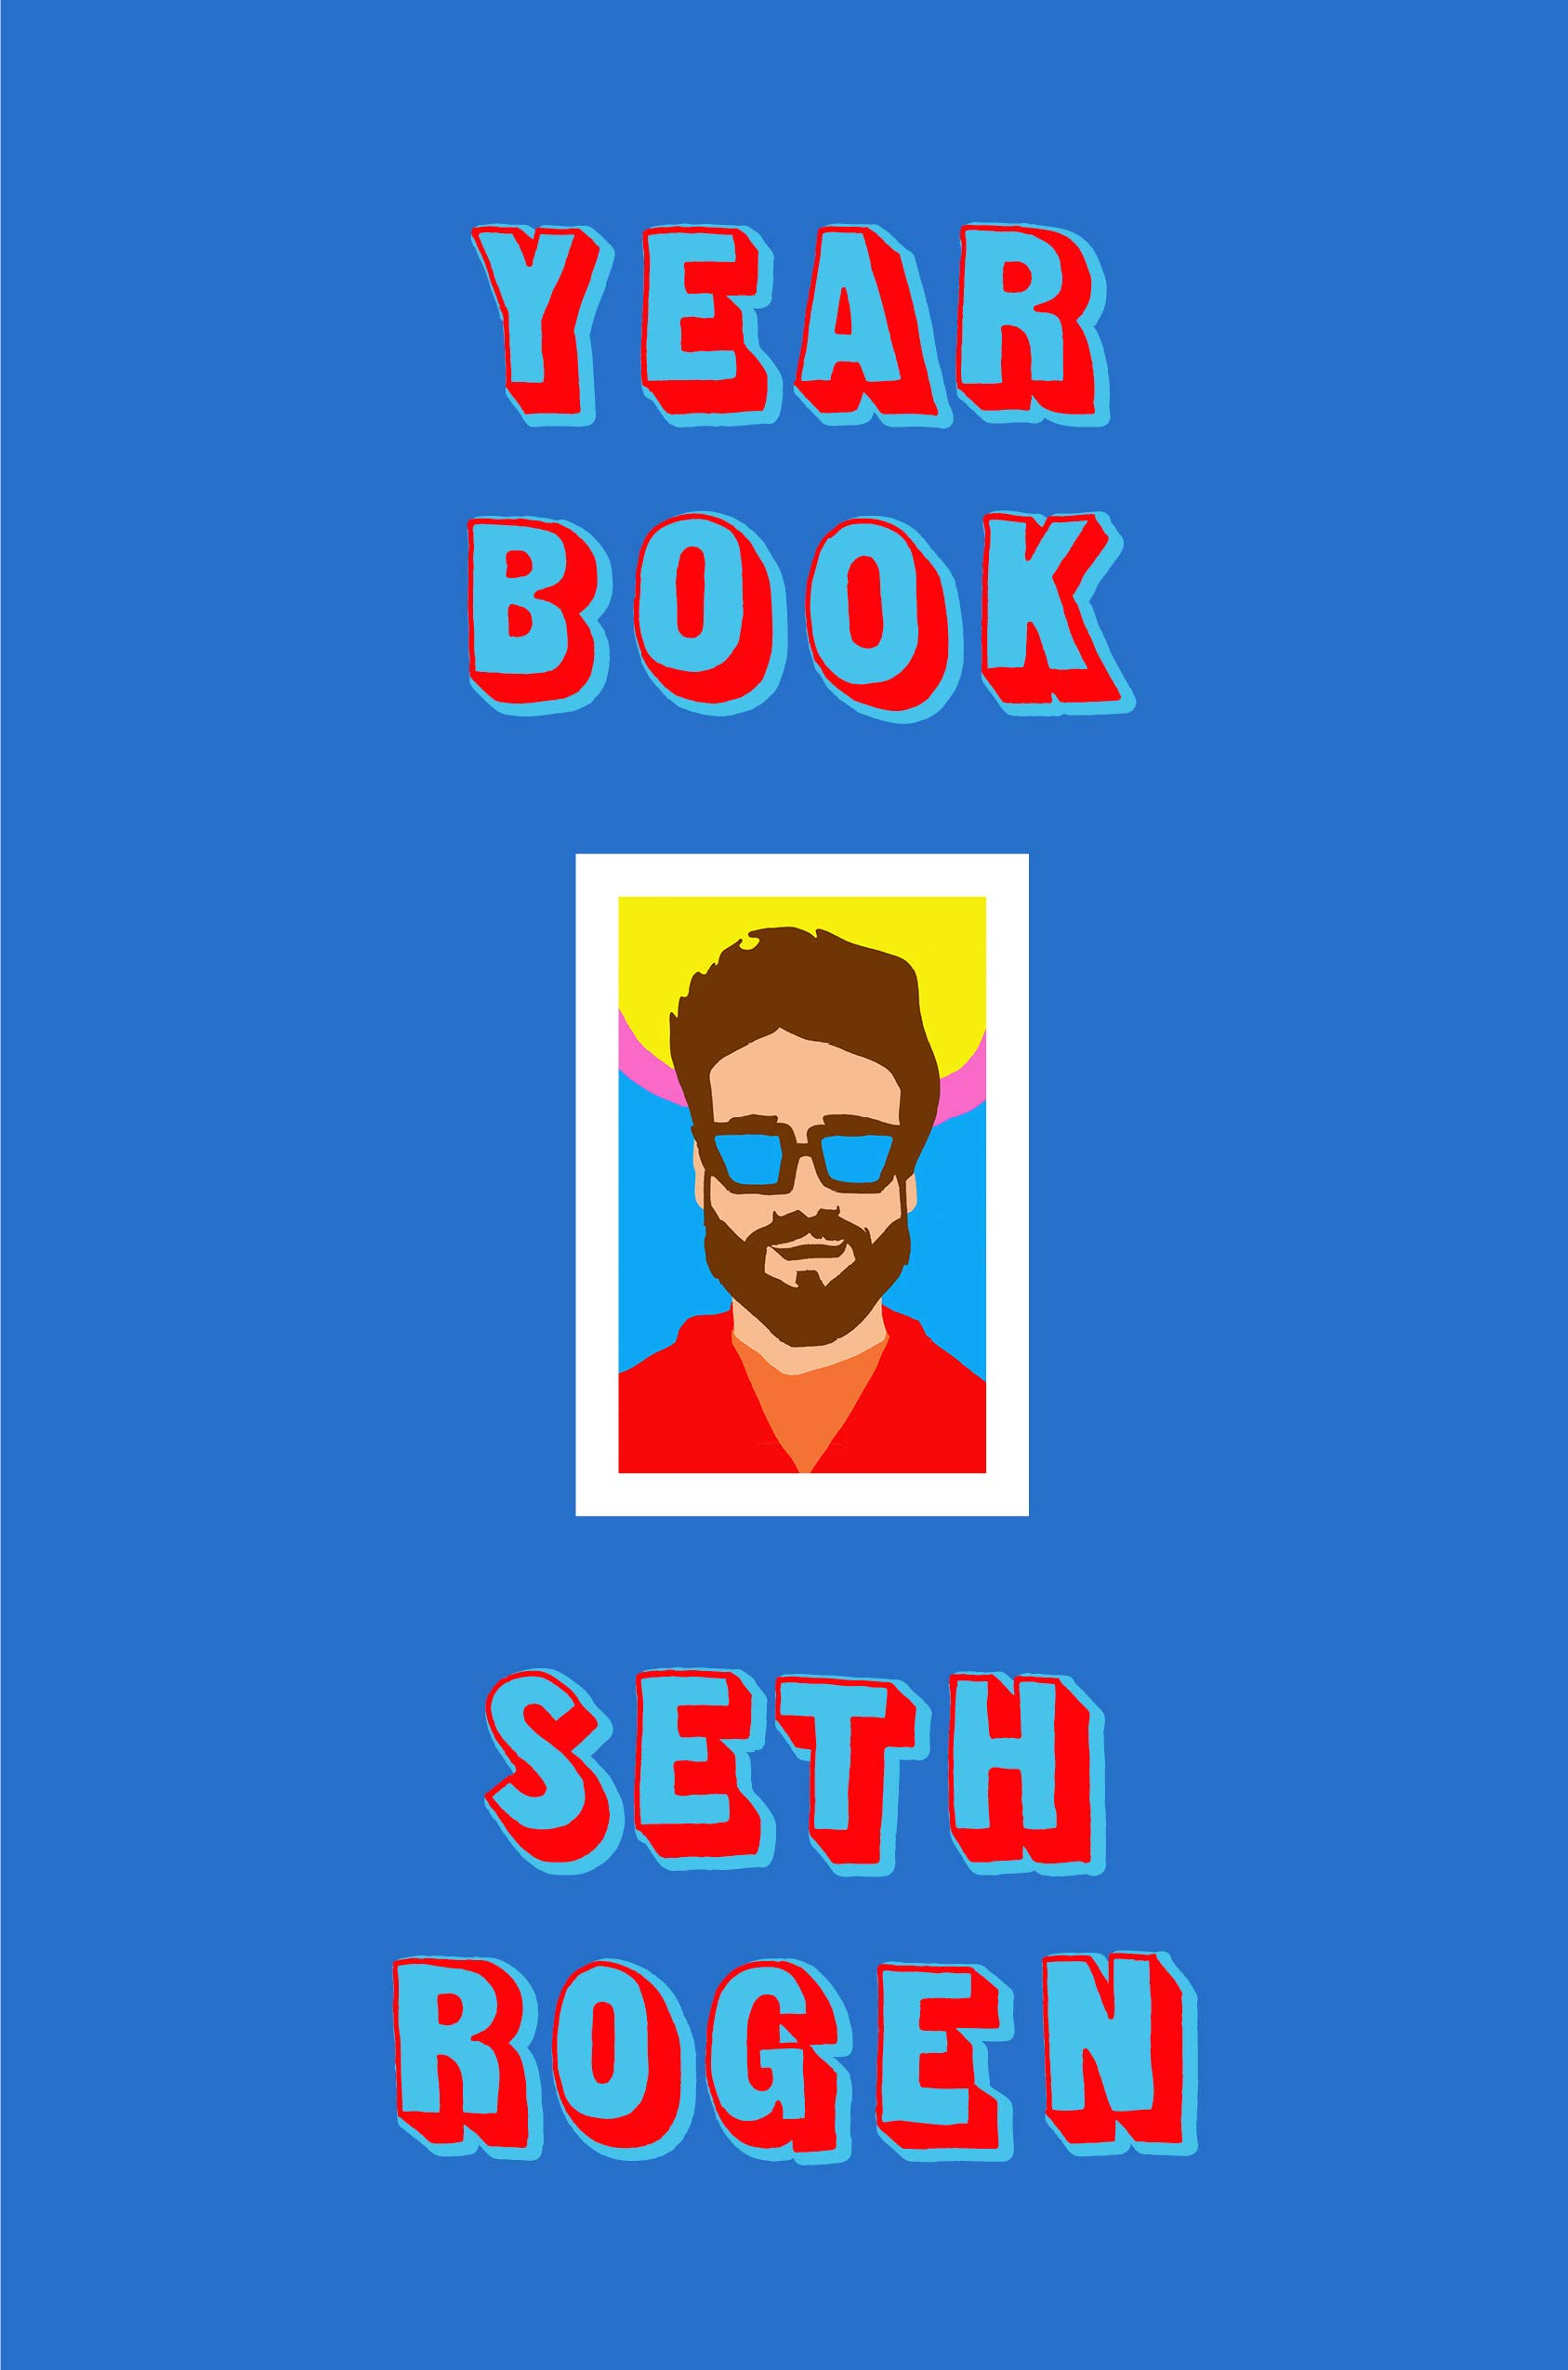 Cover image of Yearbook by Seth Rogen